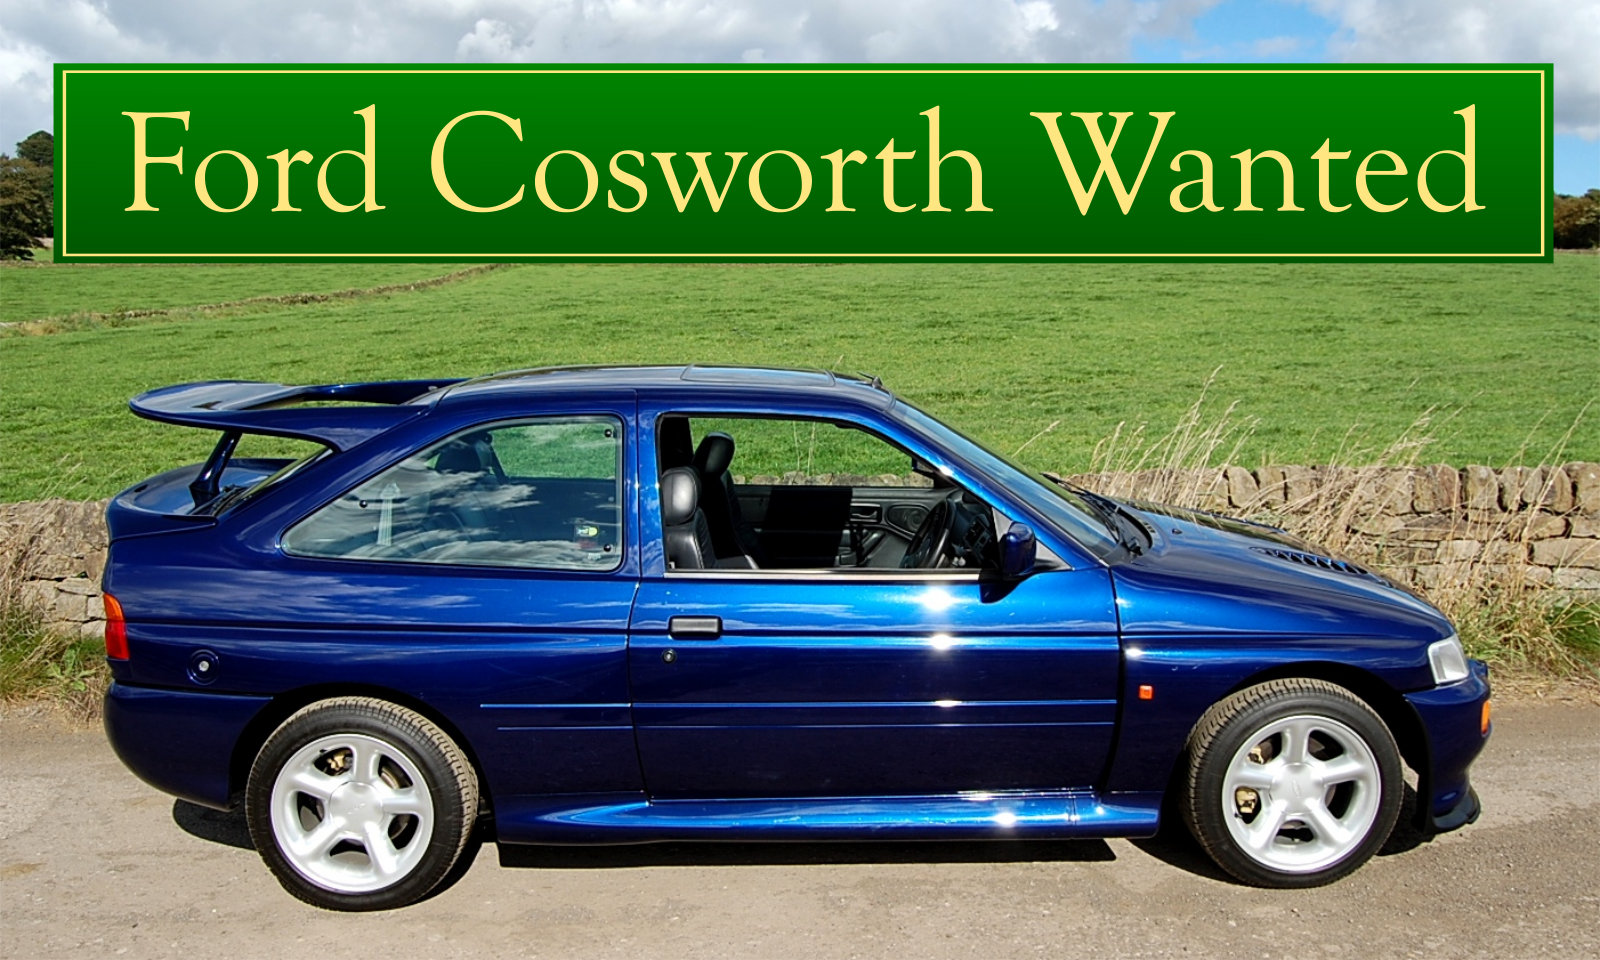 FORD COSWORTH WANTED Wanted (picture 2 of 6)